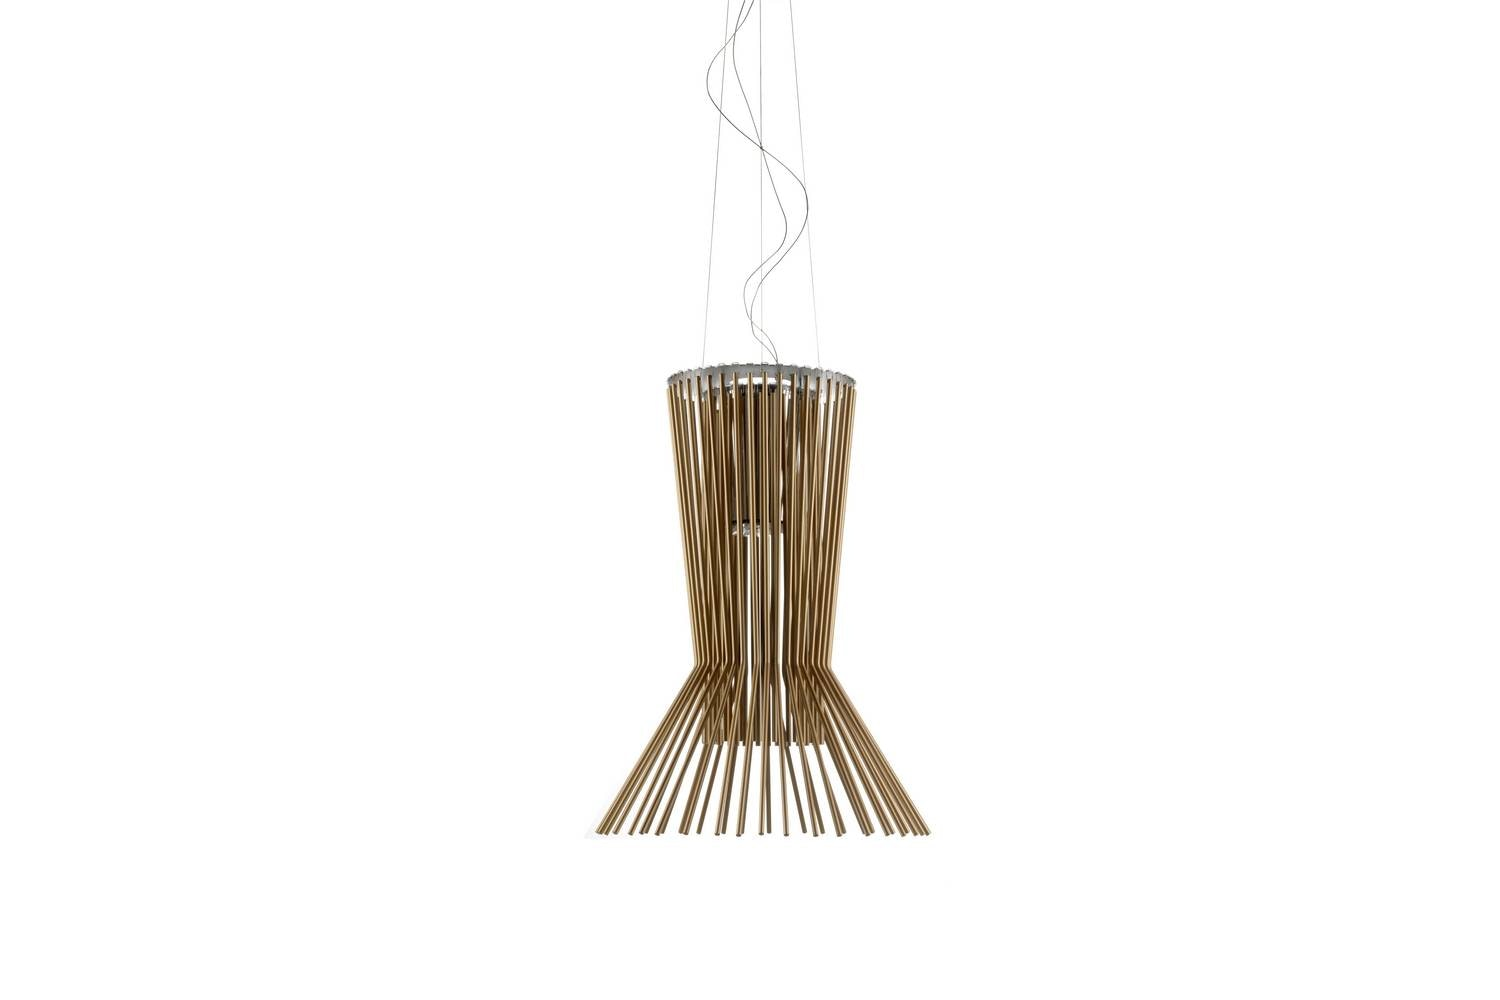 Allegretto Vivace Suspension Lamp by Atelier Oi for Foscarini